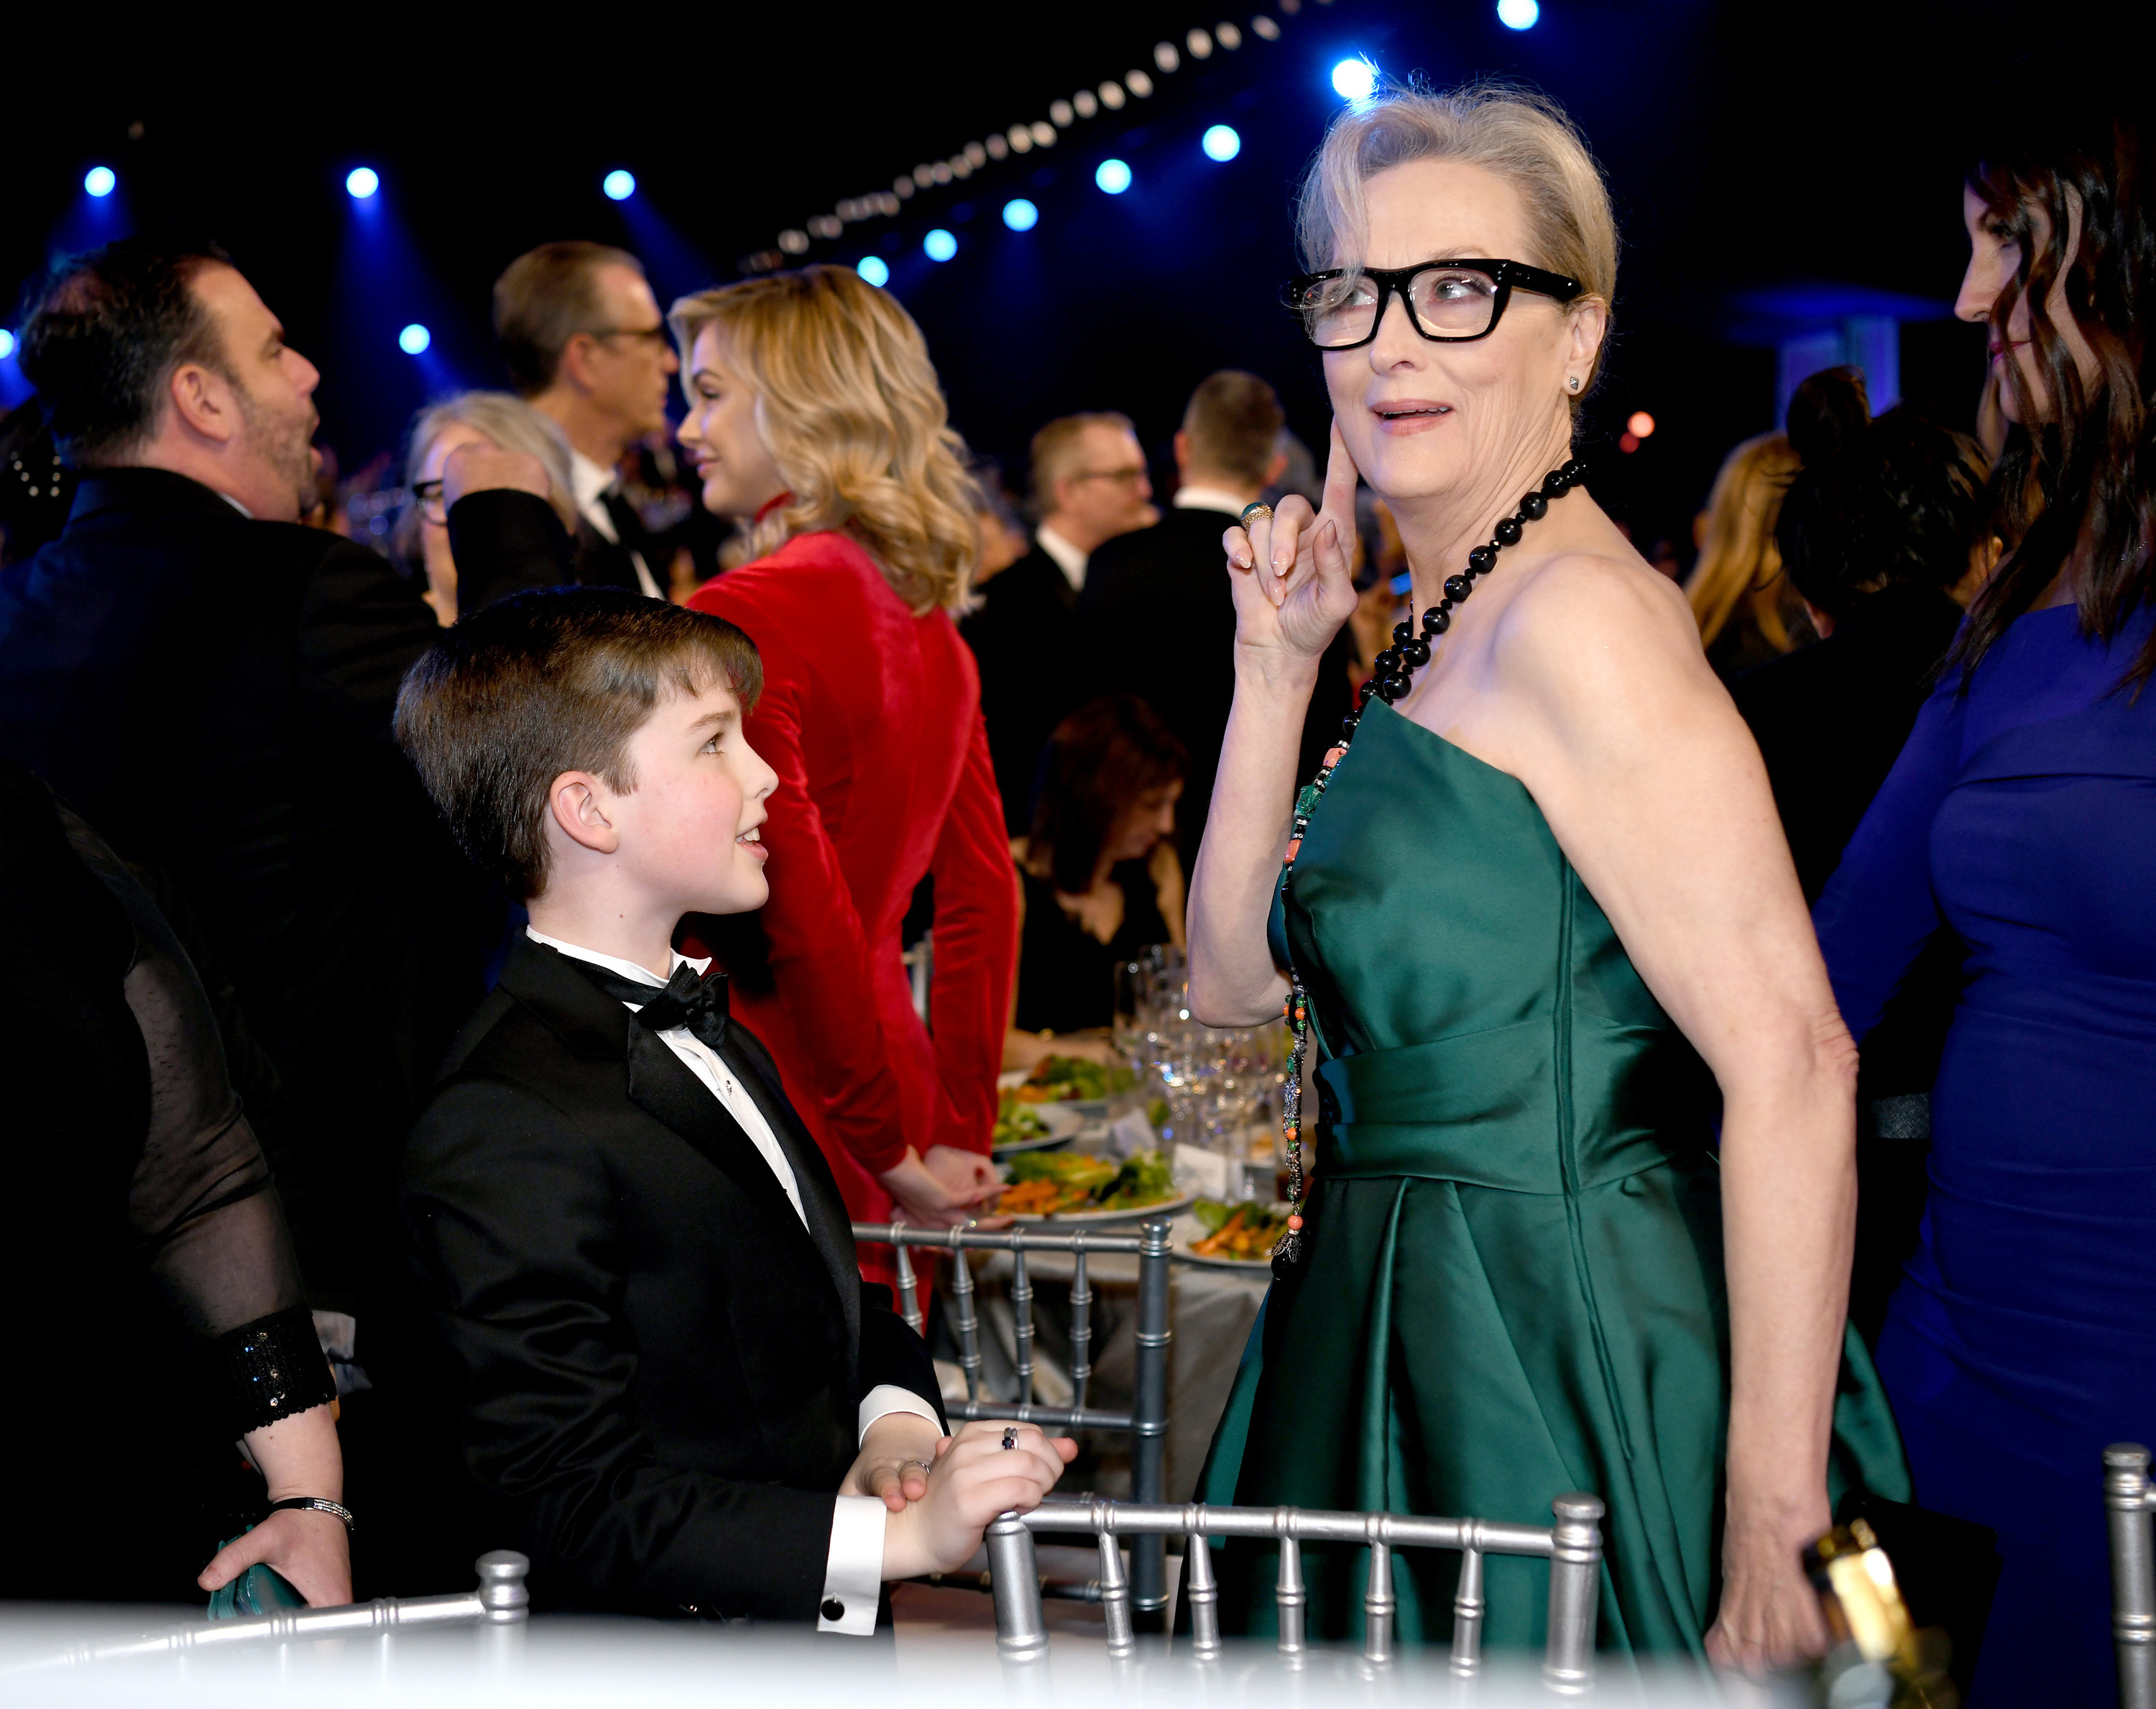 Meryl in a green dress at the golden globes